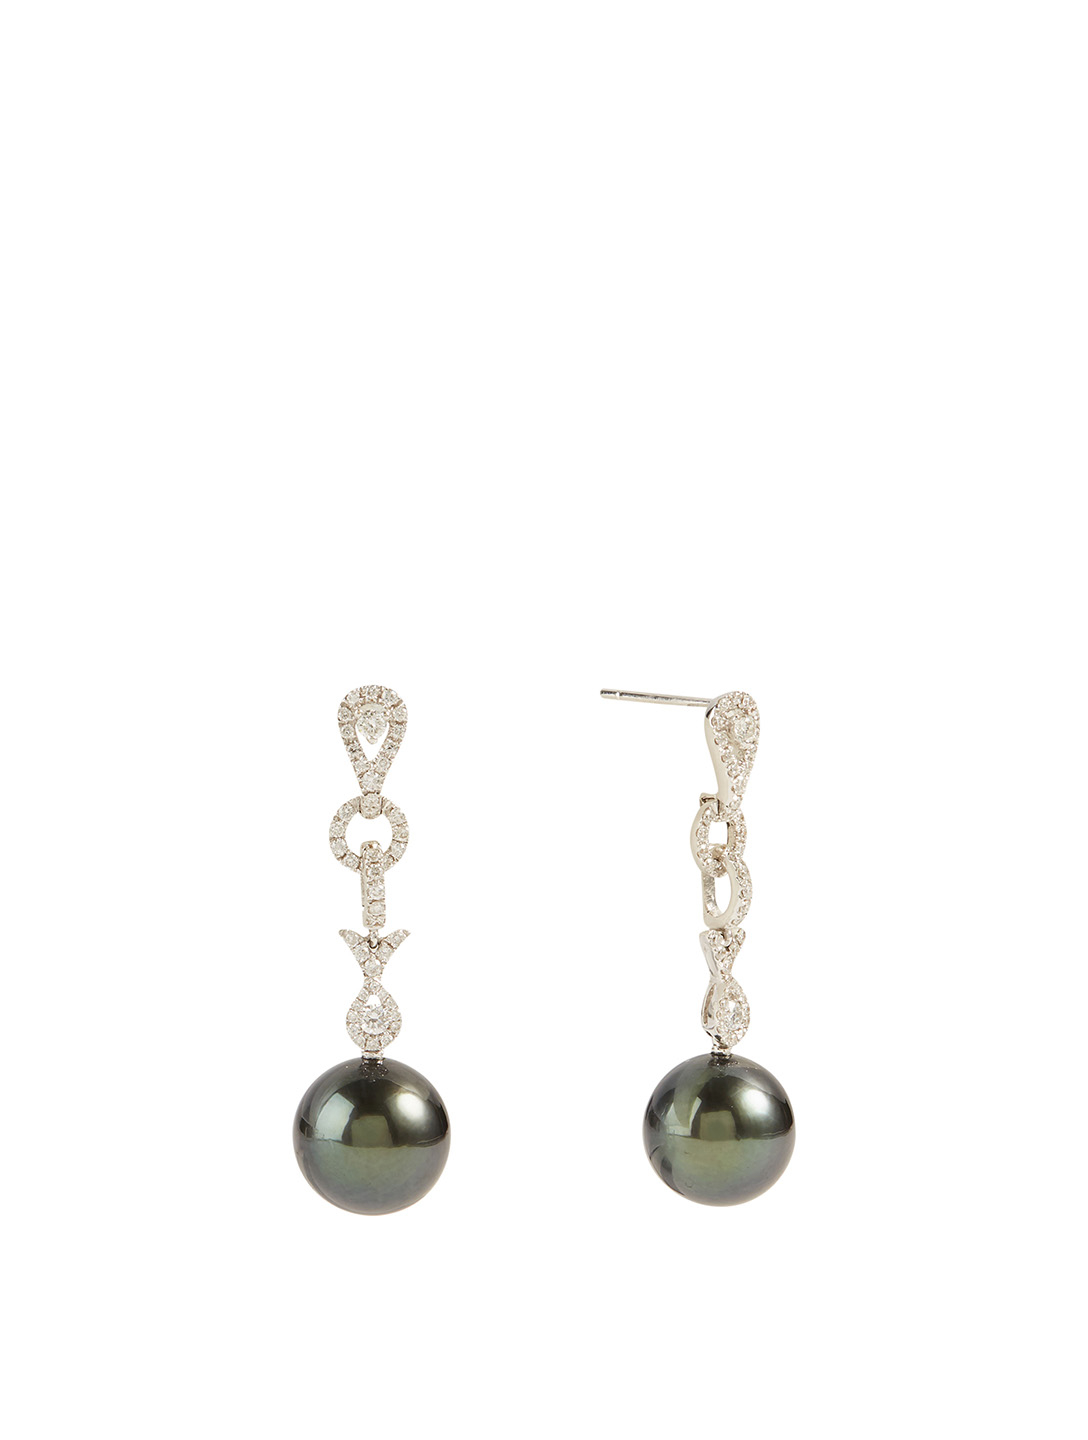 YOKO LONDON 18K White Gold Tahitian South Sea Pearl Drop Earrings With Diamonds Women's Metallic